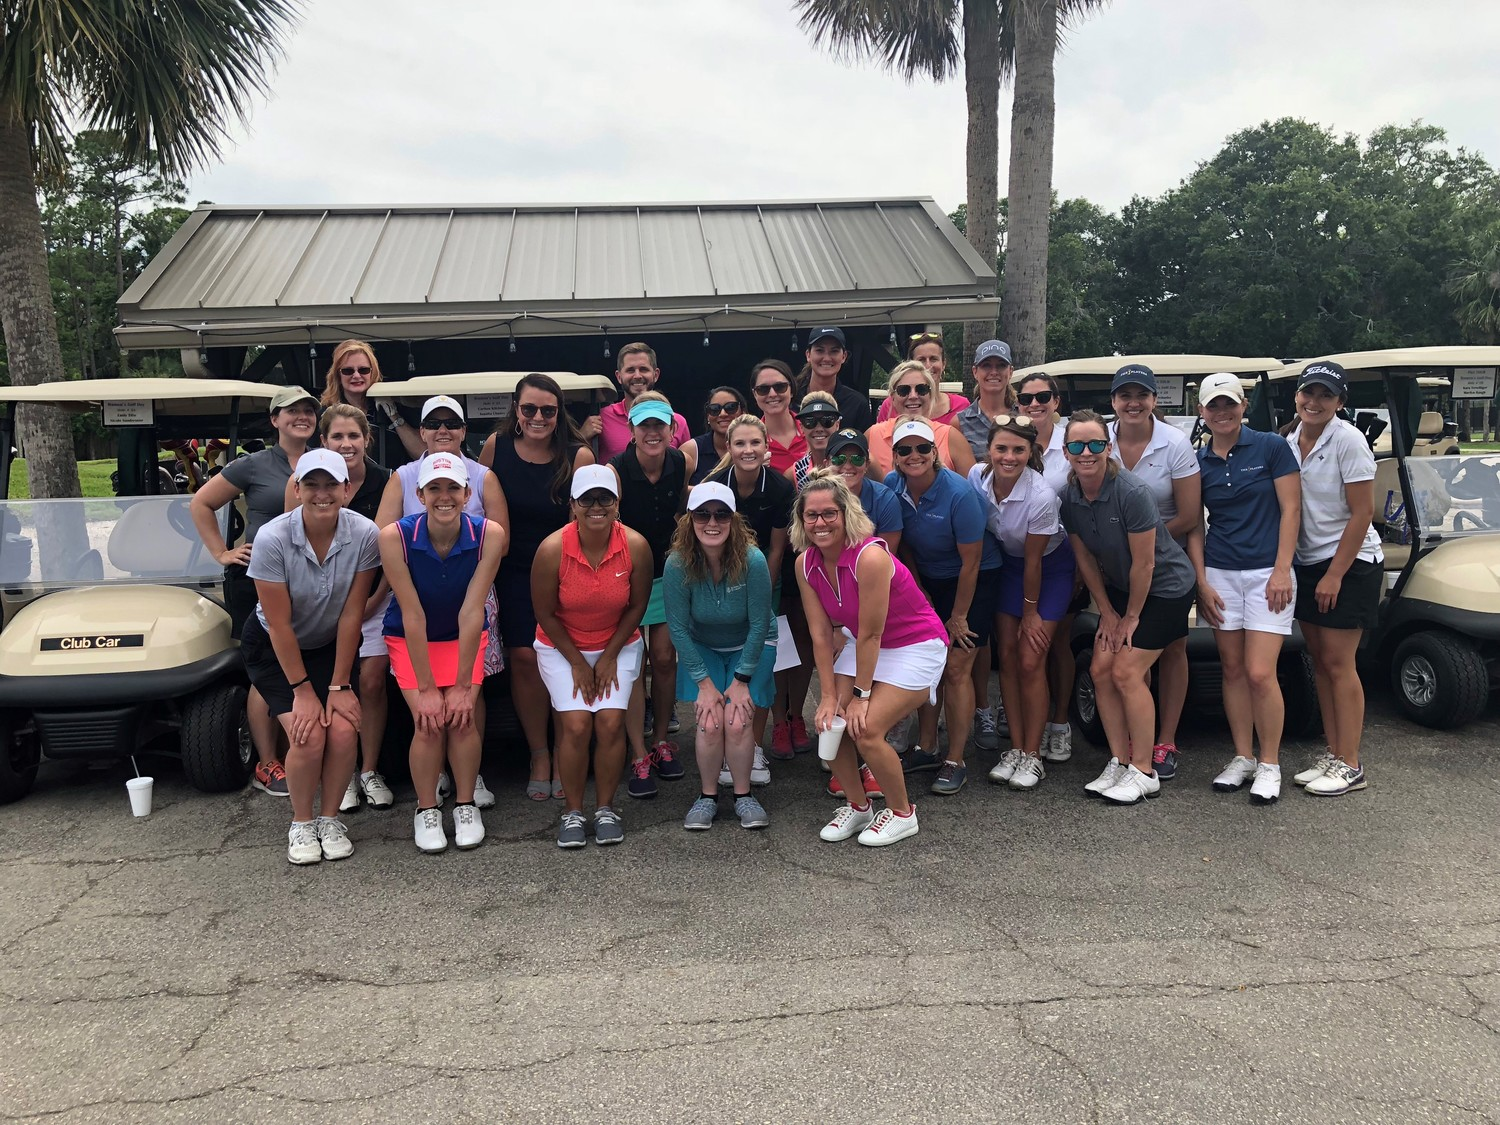 A group of PGA Tour female employees played the Oak Bridge Club at Sawgrass on June 5 to celebrate Women's Golf Day. People all over the world participated in similar events to showcase golf and introduce the game to more women and girls.